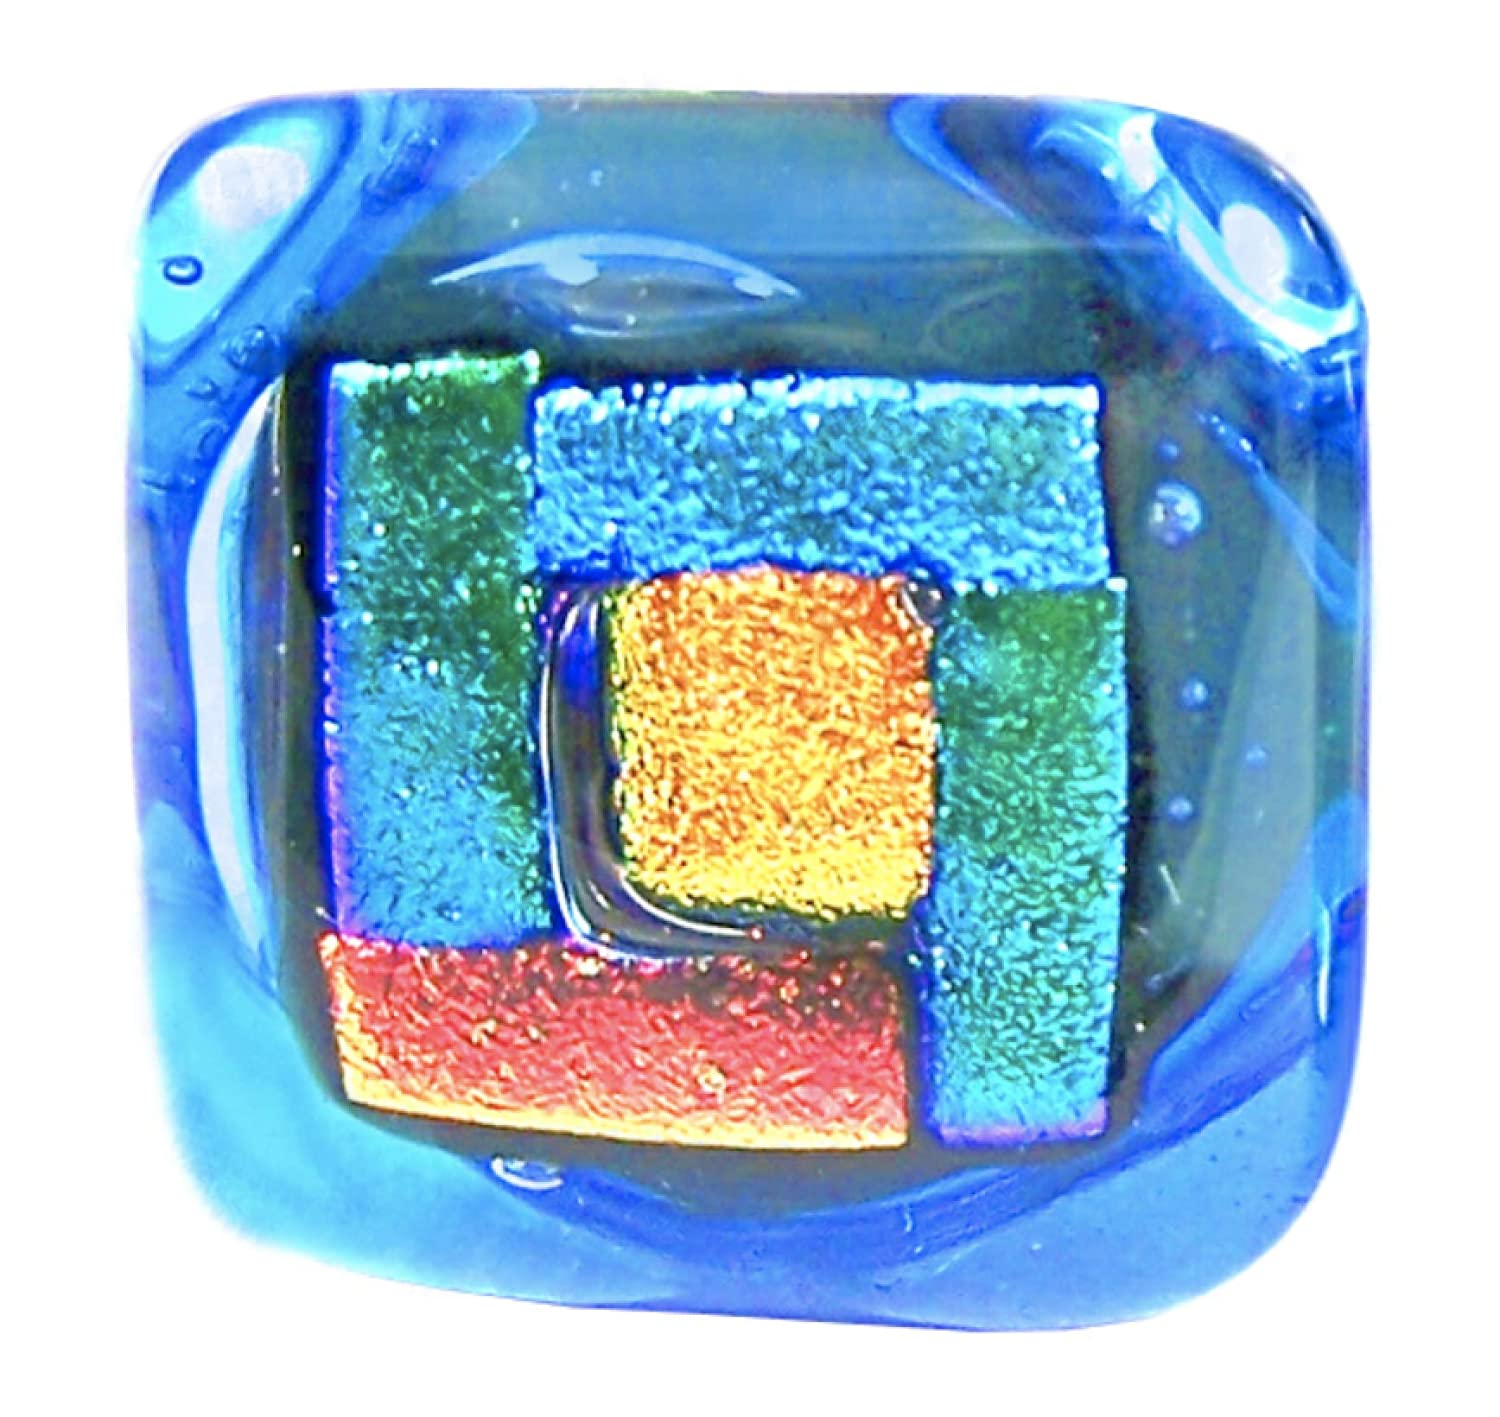 Dichroic Glass Knobs Custom Made Craftsman Geometric Blocks - Cabinet or Drawer Pull Handle - 1